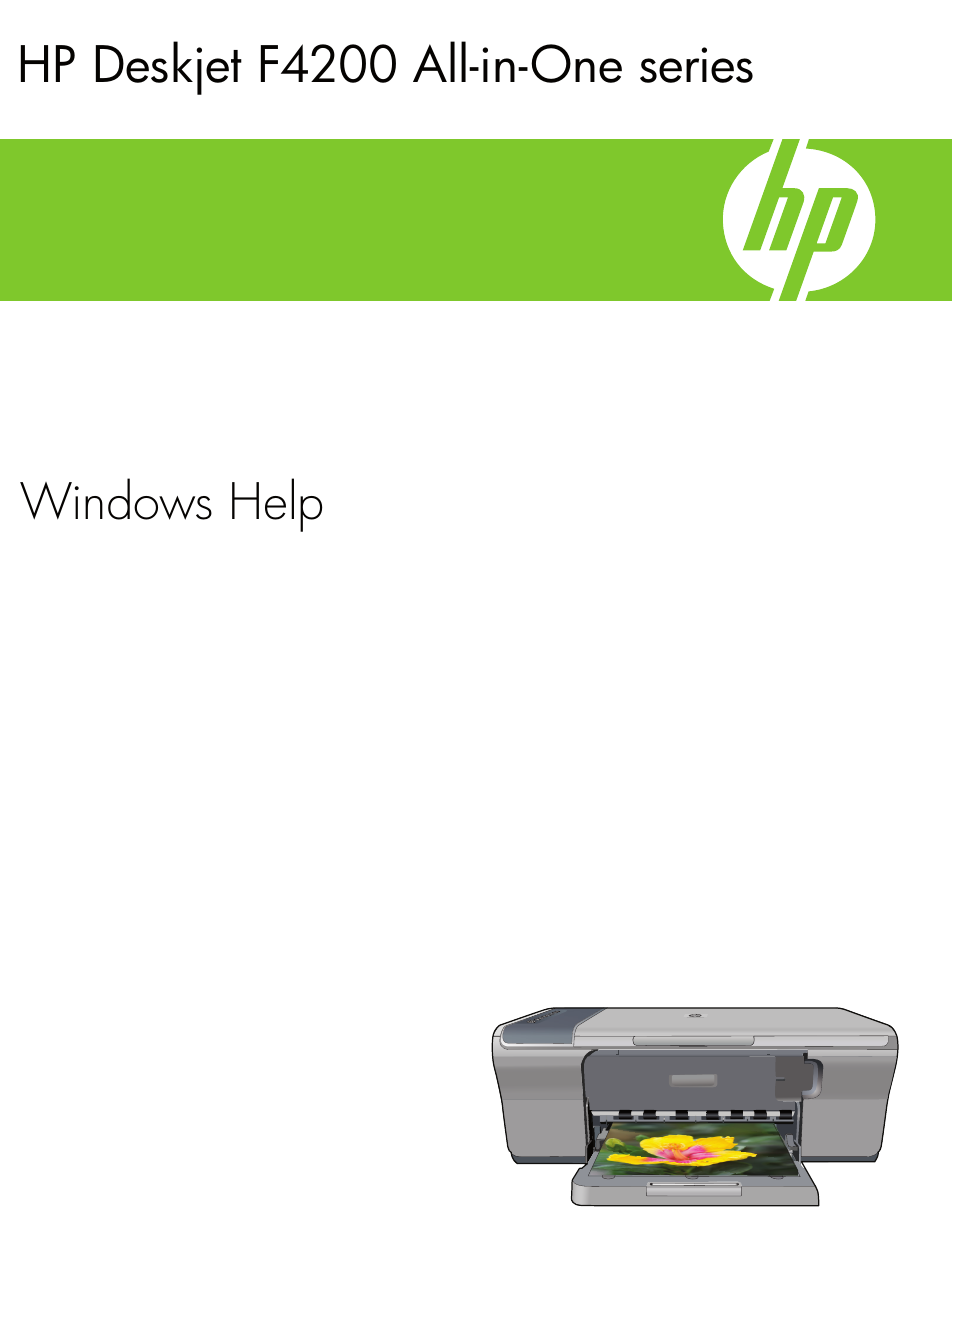 Index | hp deskjet f4240 all-in-one printer user manual | page 224.